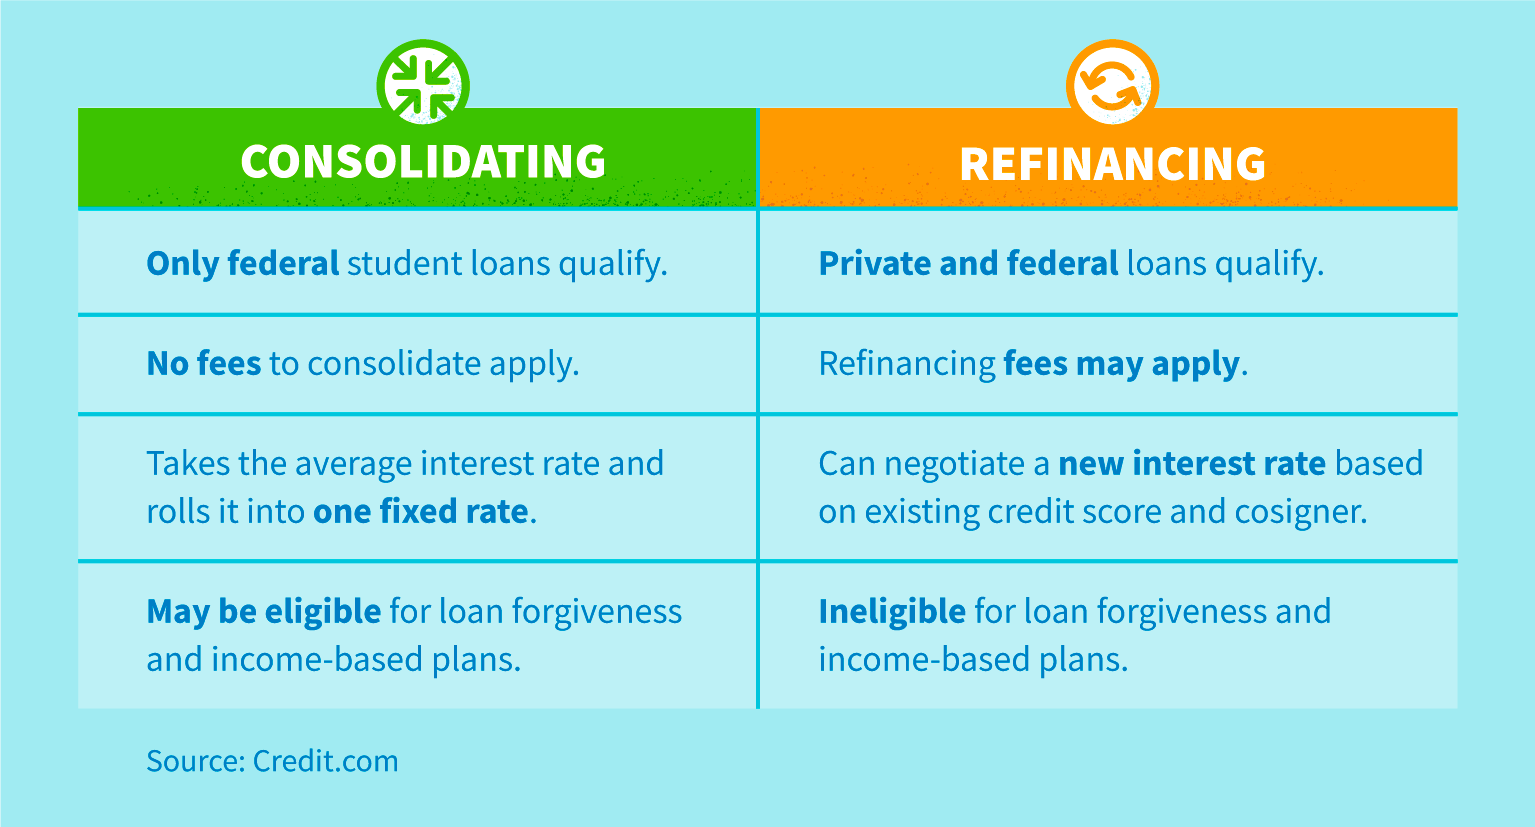 consolidating private loans